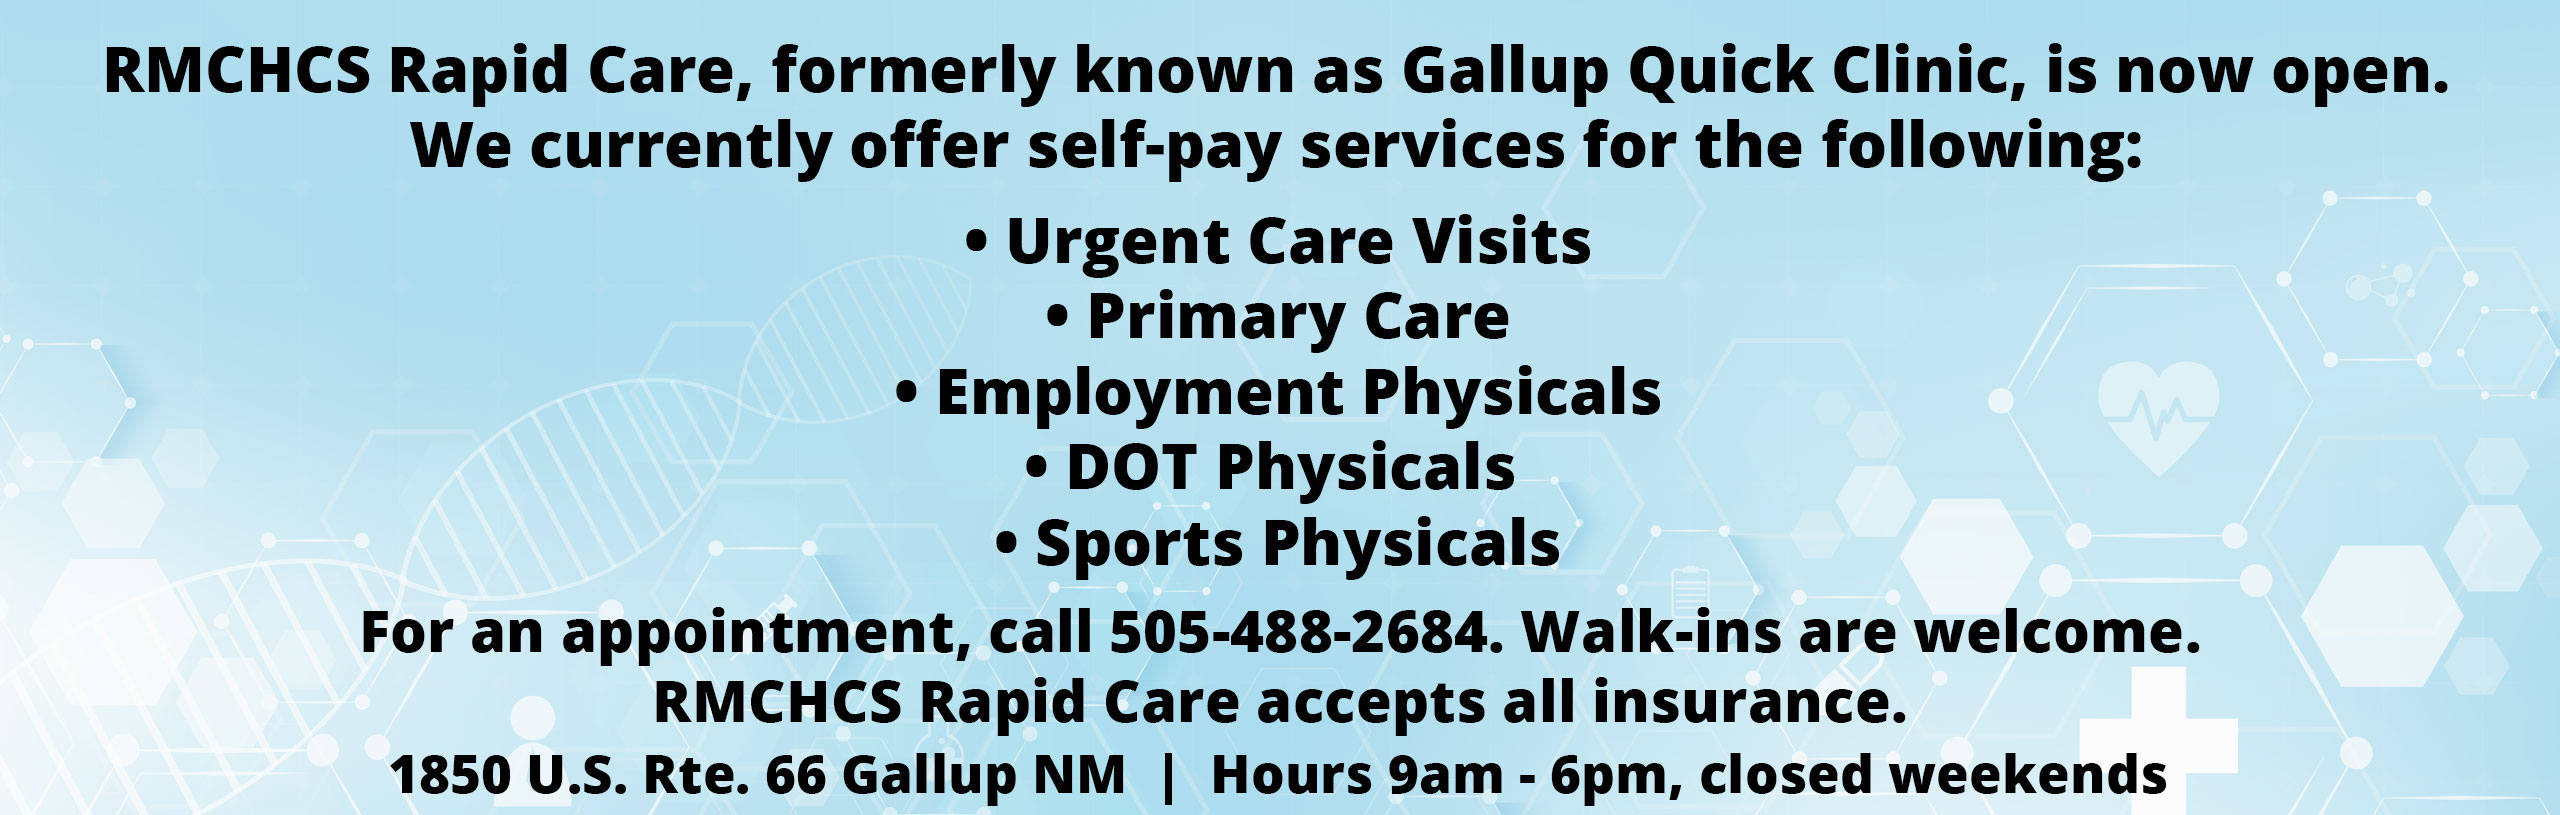 RMCHCS Rapid Care, formerly known as Gallup Quick Clinic, is now open. We currently offer self-pay services for the following:  · Urgent Care Visits  · Primary Care  · Employment Physicals  · DOT physicals  · Sports Physicals  For an appointment, call 505-488-2603. Walk-ins are welcome.  RMCHCS Rapid Care will be accepting most insurances in the future.